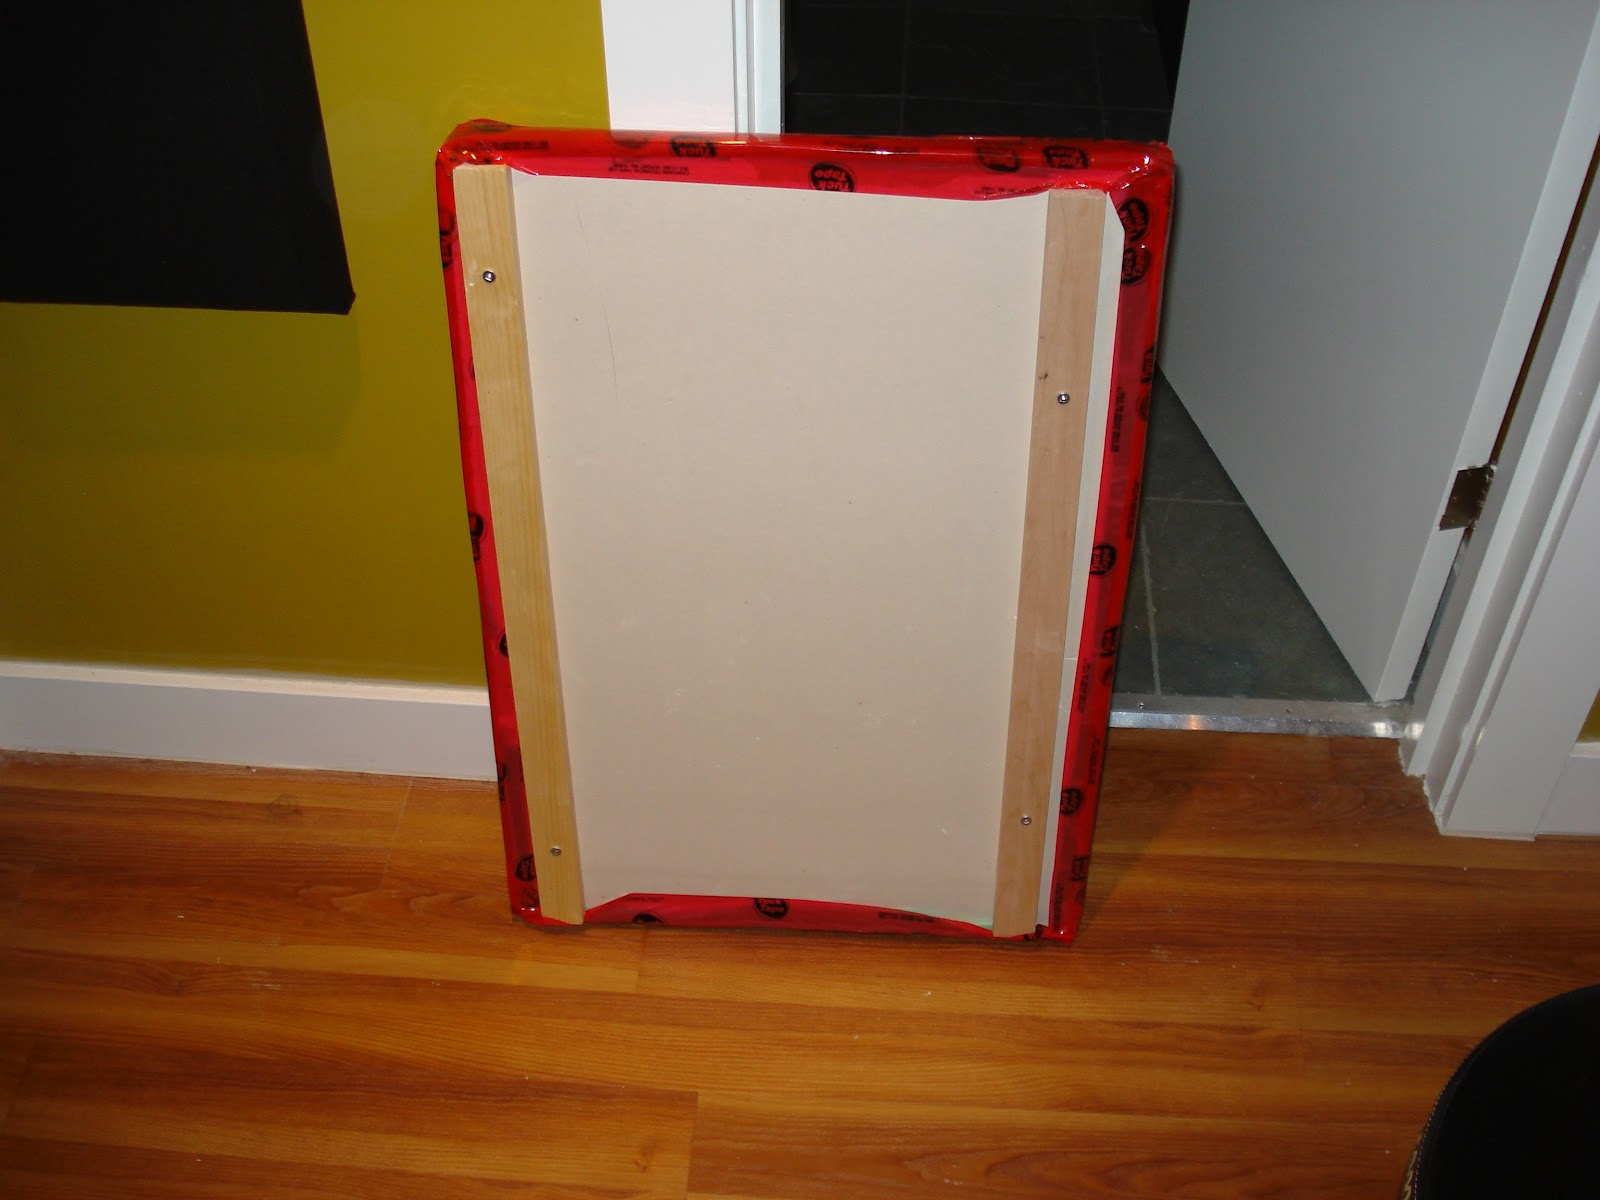 Soundproof windows - Soundproofing Windows With Homemade Plugs